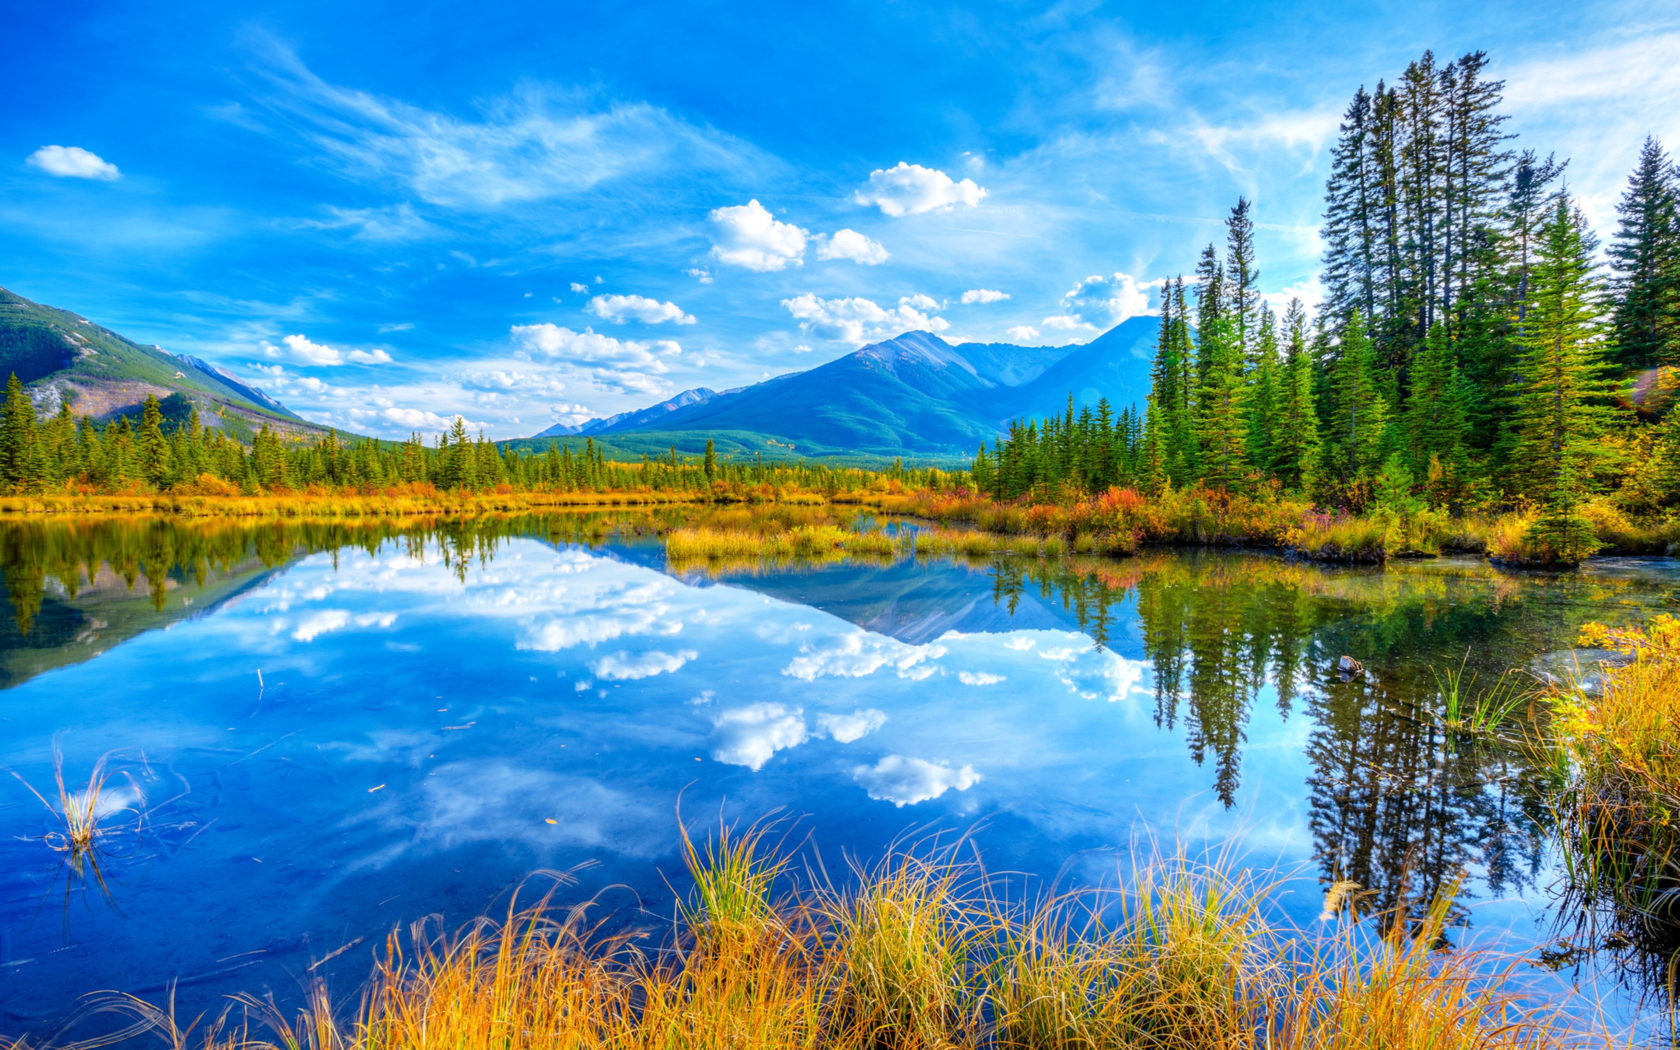 Free Wallpapers Fall Season Lake And Yellow Grass Pine Trees Reflecting The Blue Sky